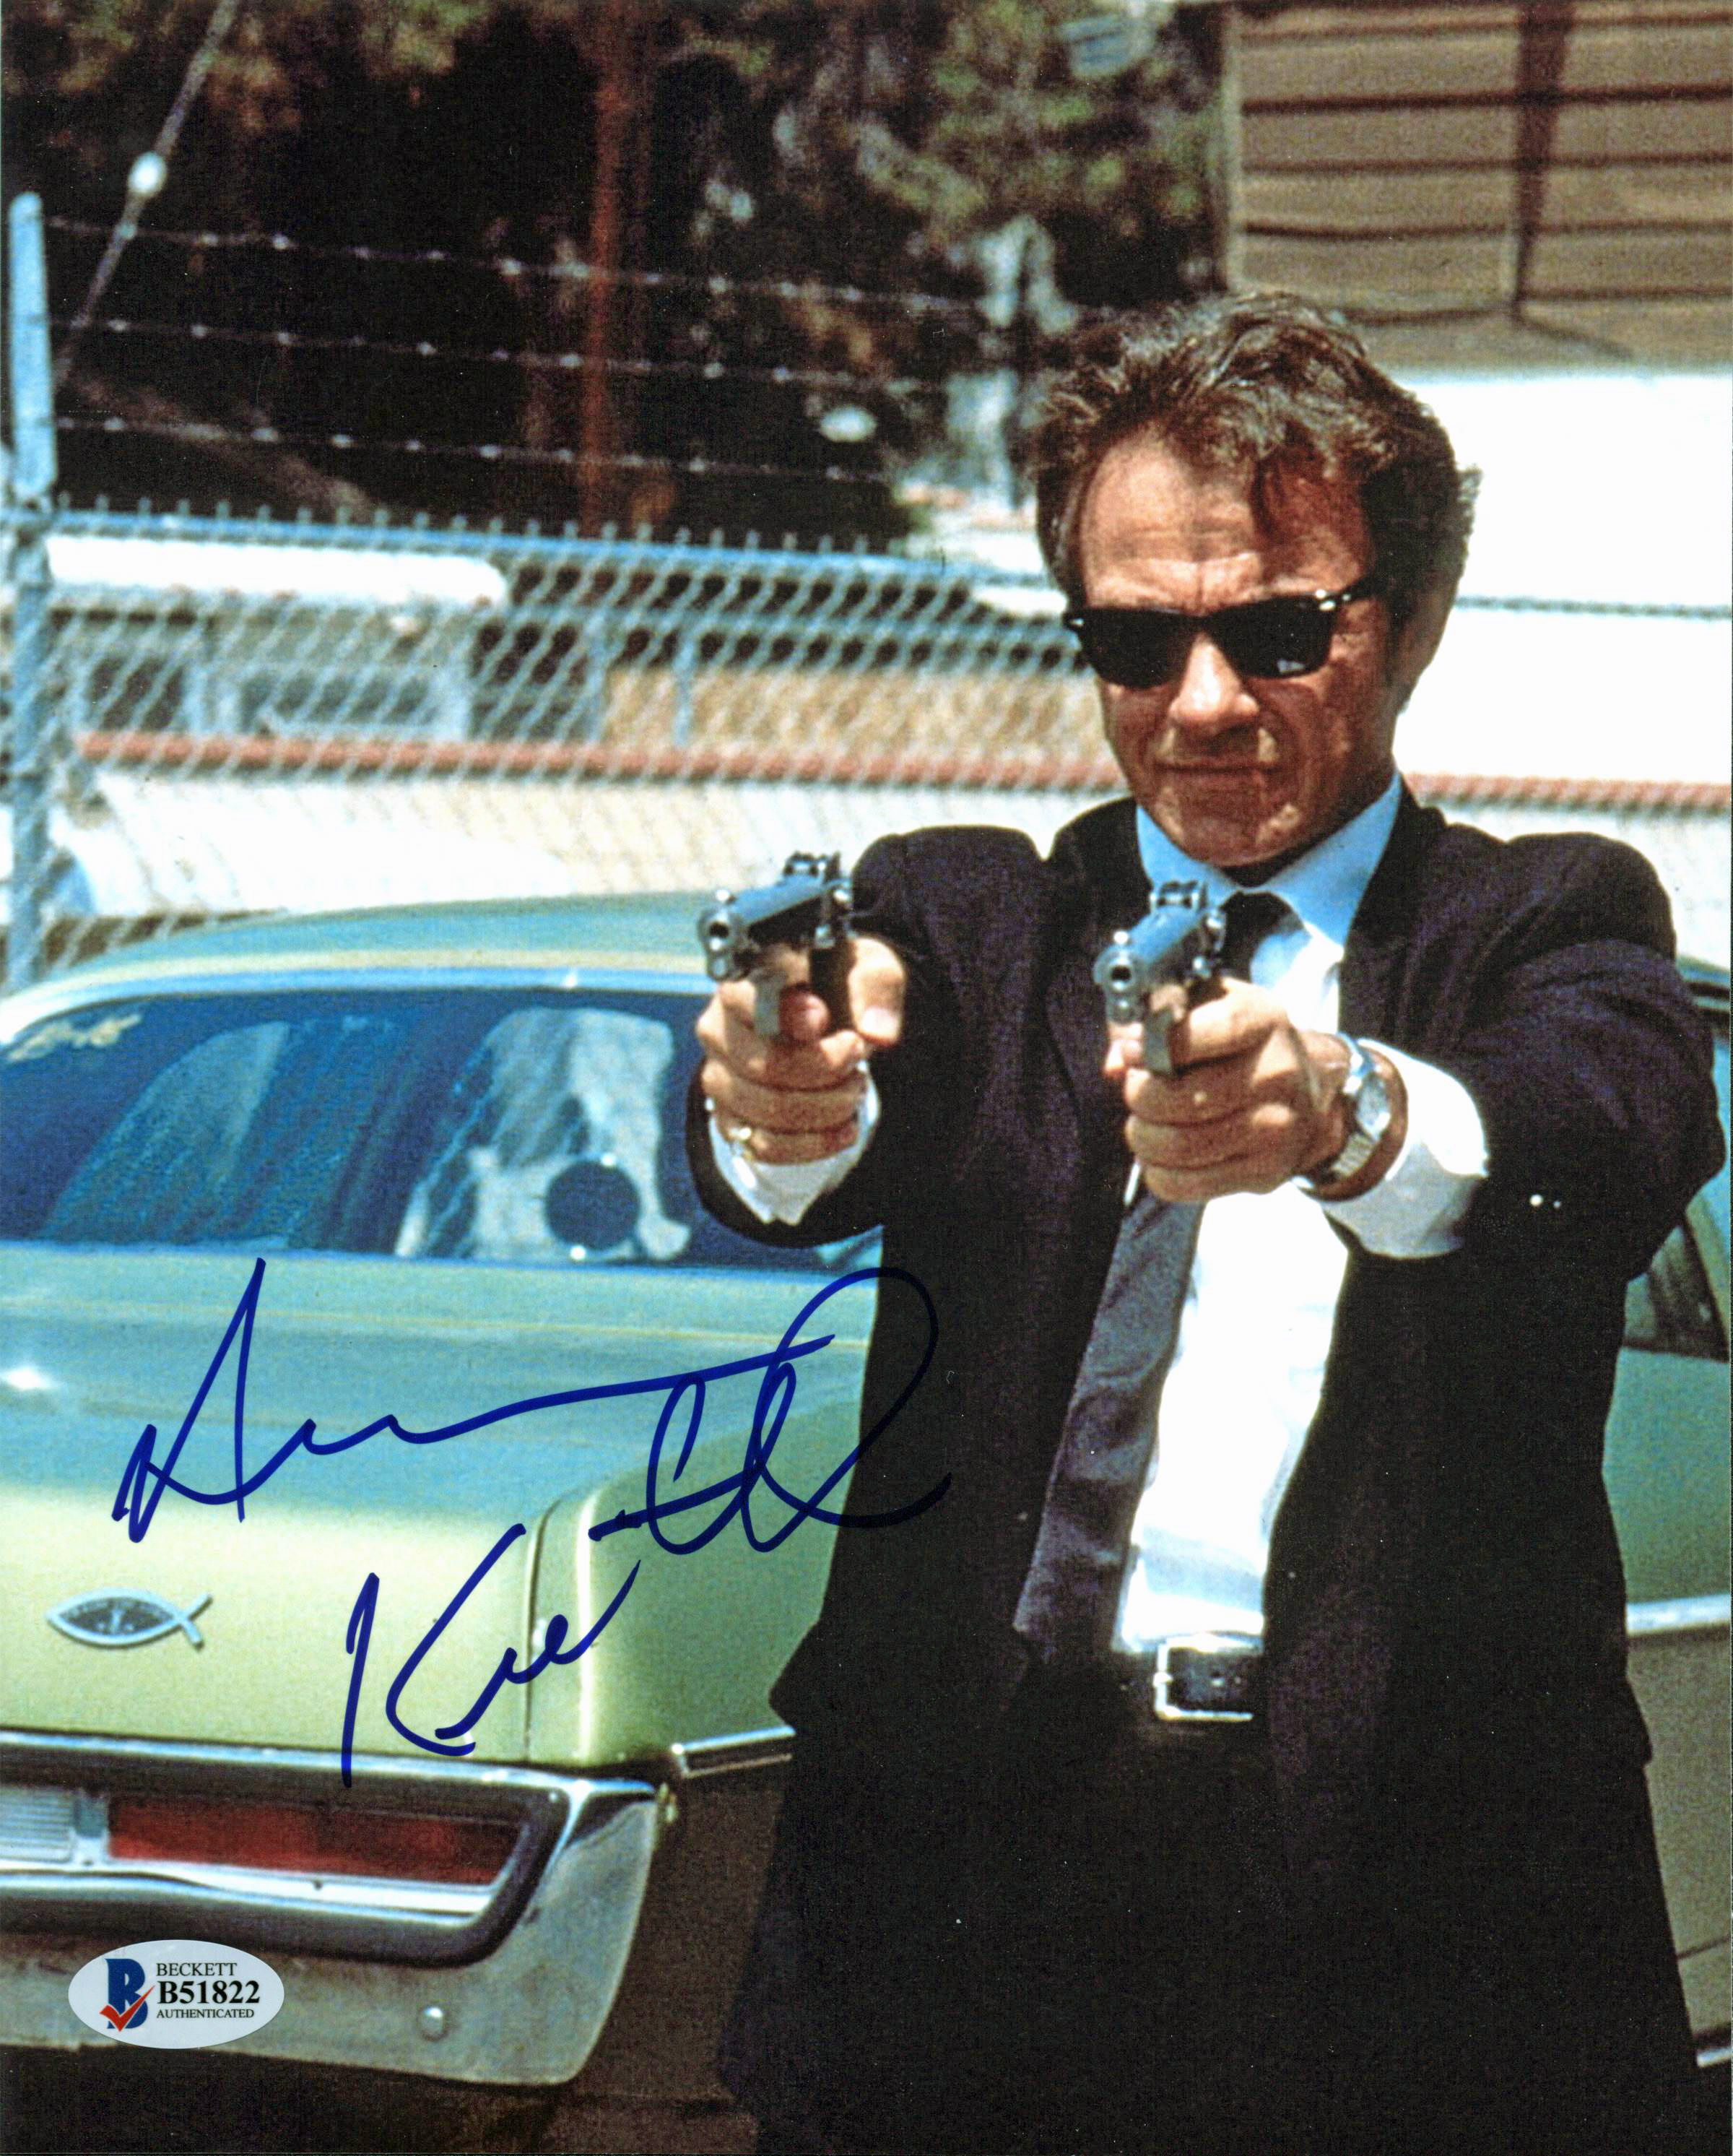 Harvey Keitel Reservoir Dogs Authentic Signed 8X10 Photo Autographed BAS #B51822